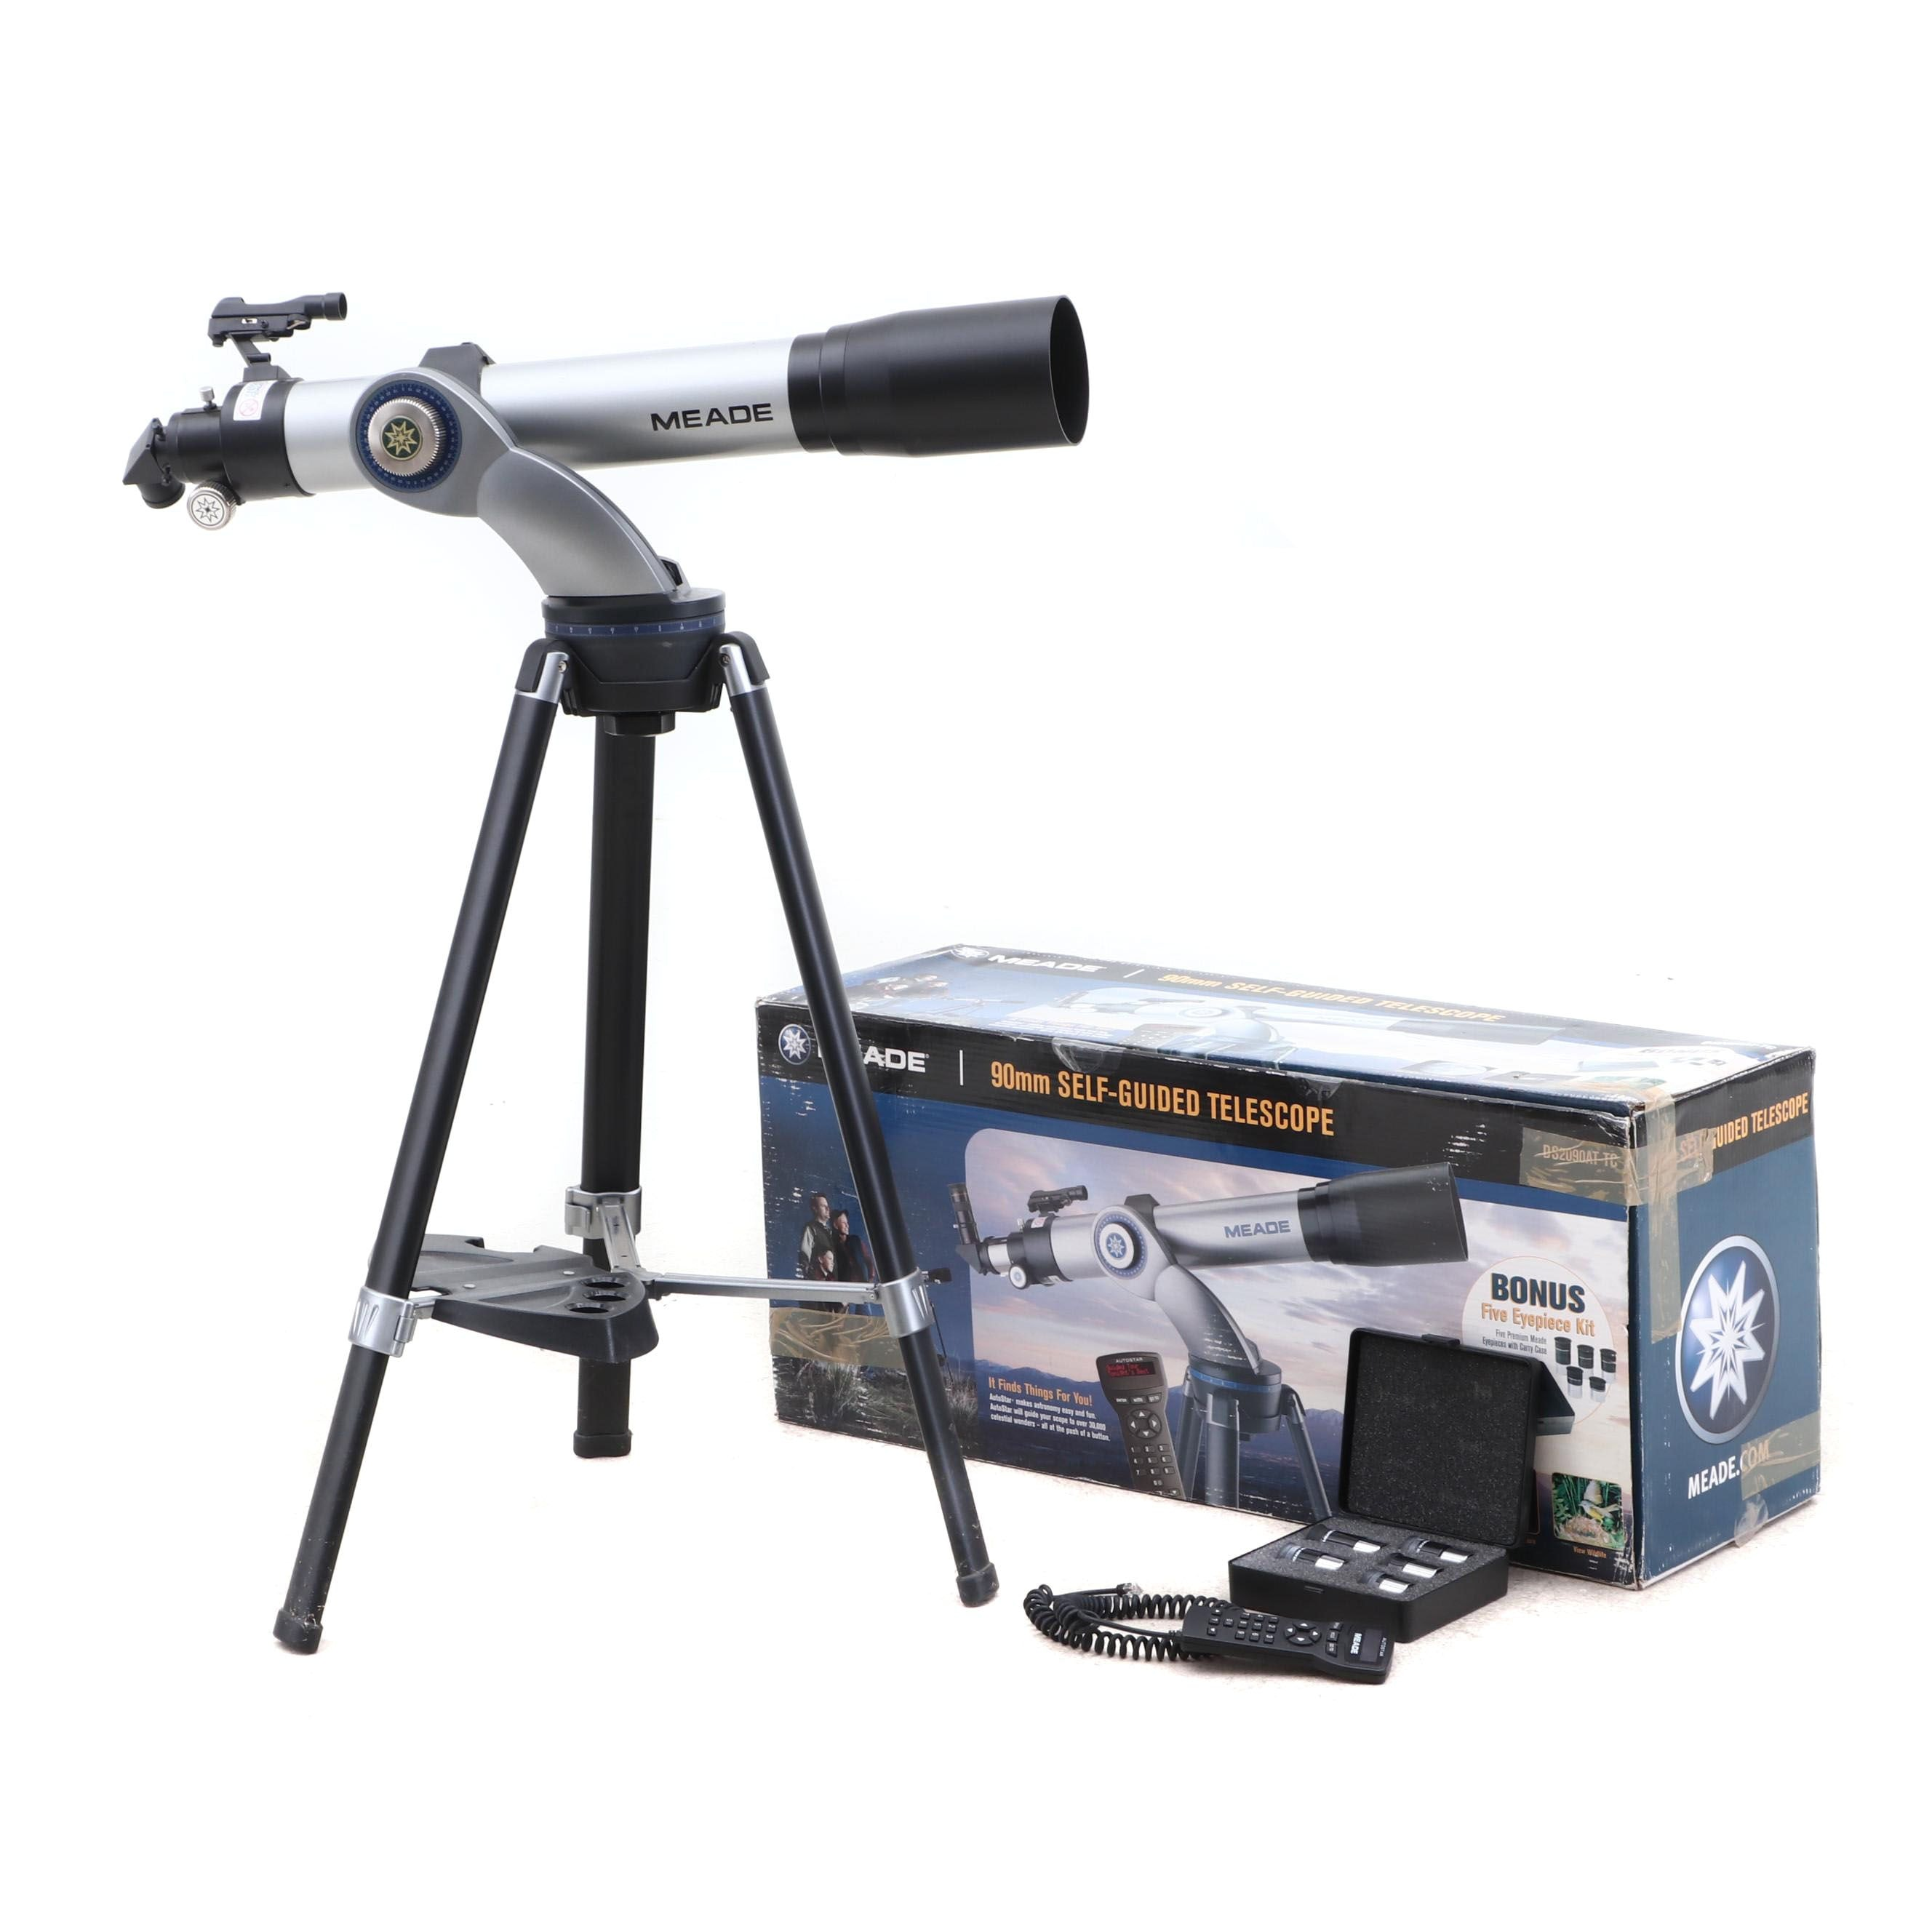 Meade 90mm Self-Guided Telescope with Stand, AutoStar and Bonus Eyepiece Kit